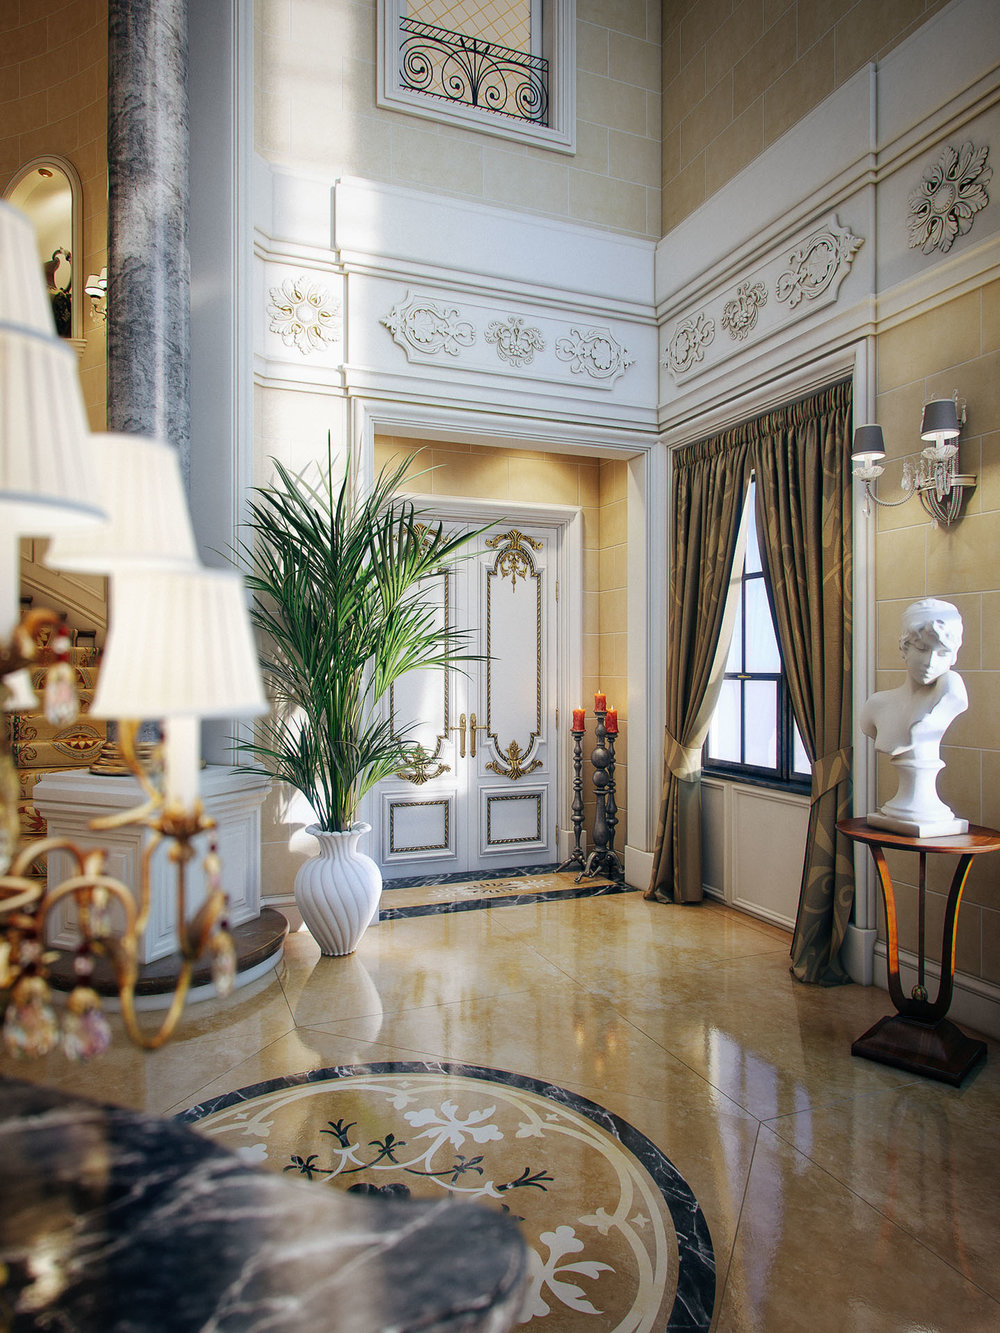 Taher Design Luxury Villa Interior Qatar (2).jpg